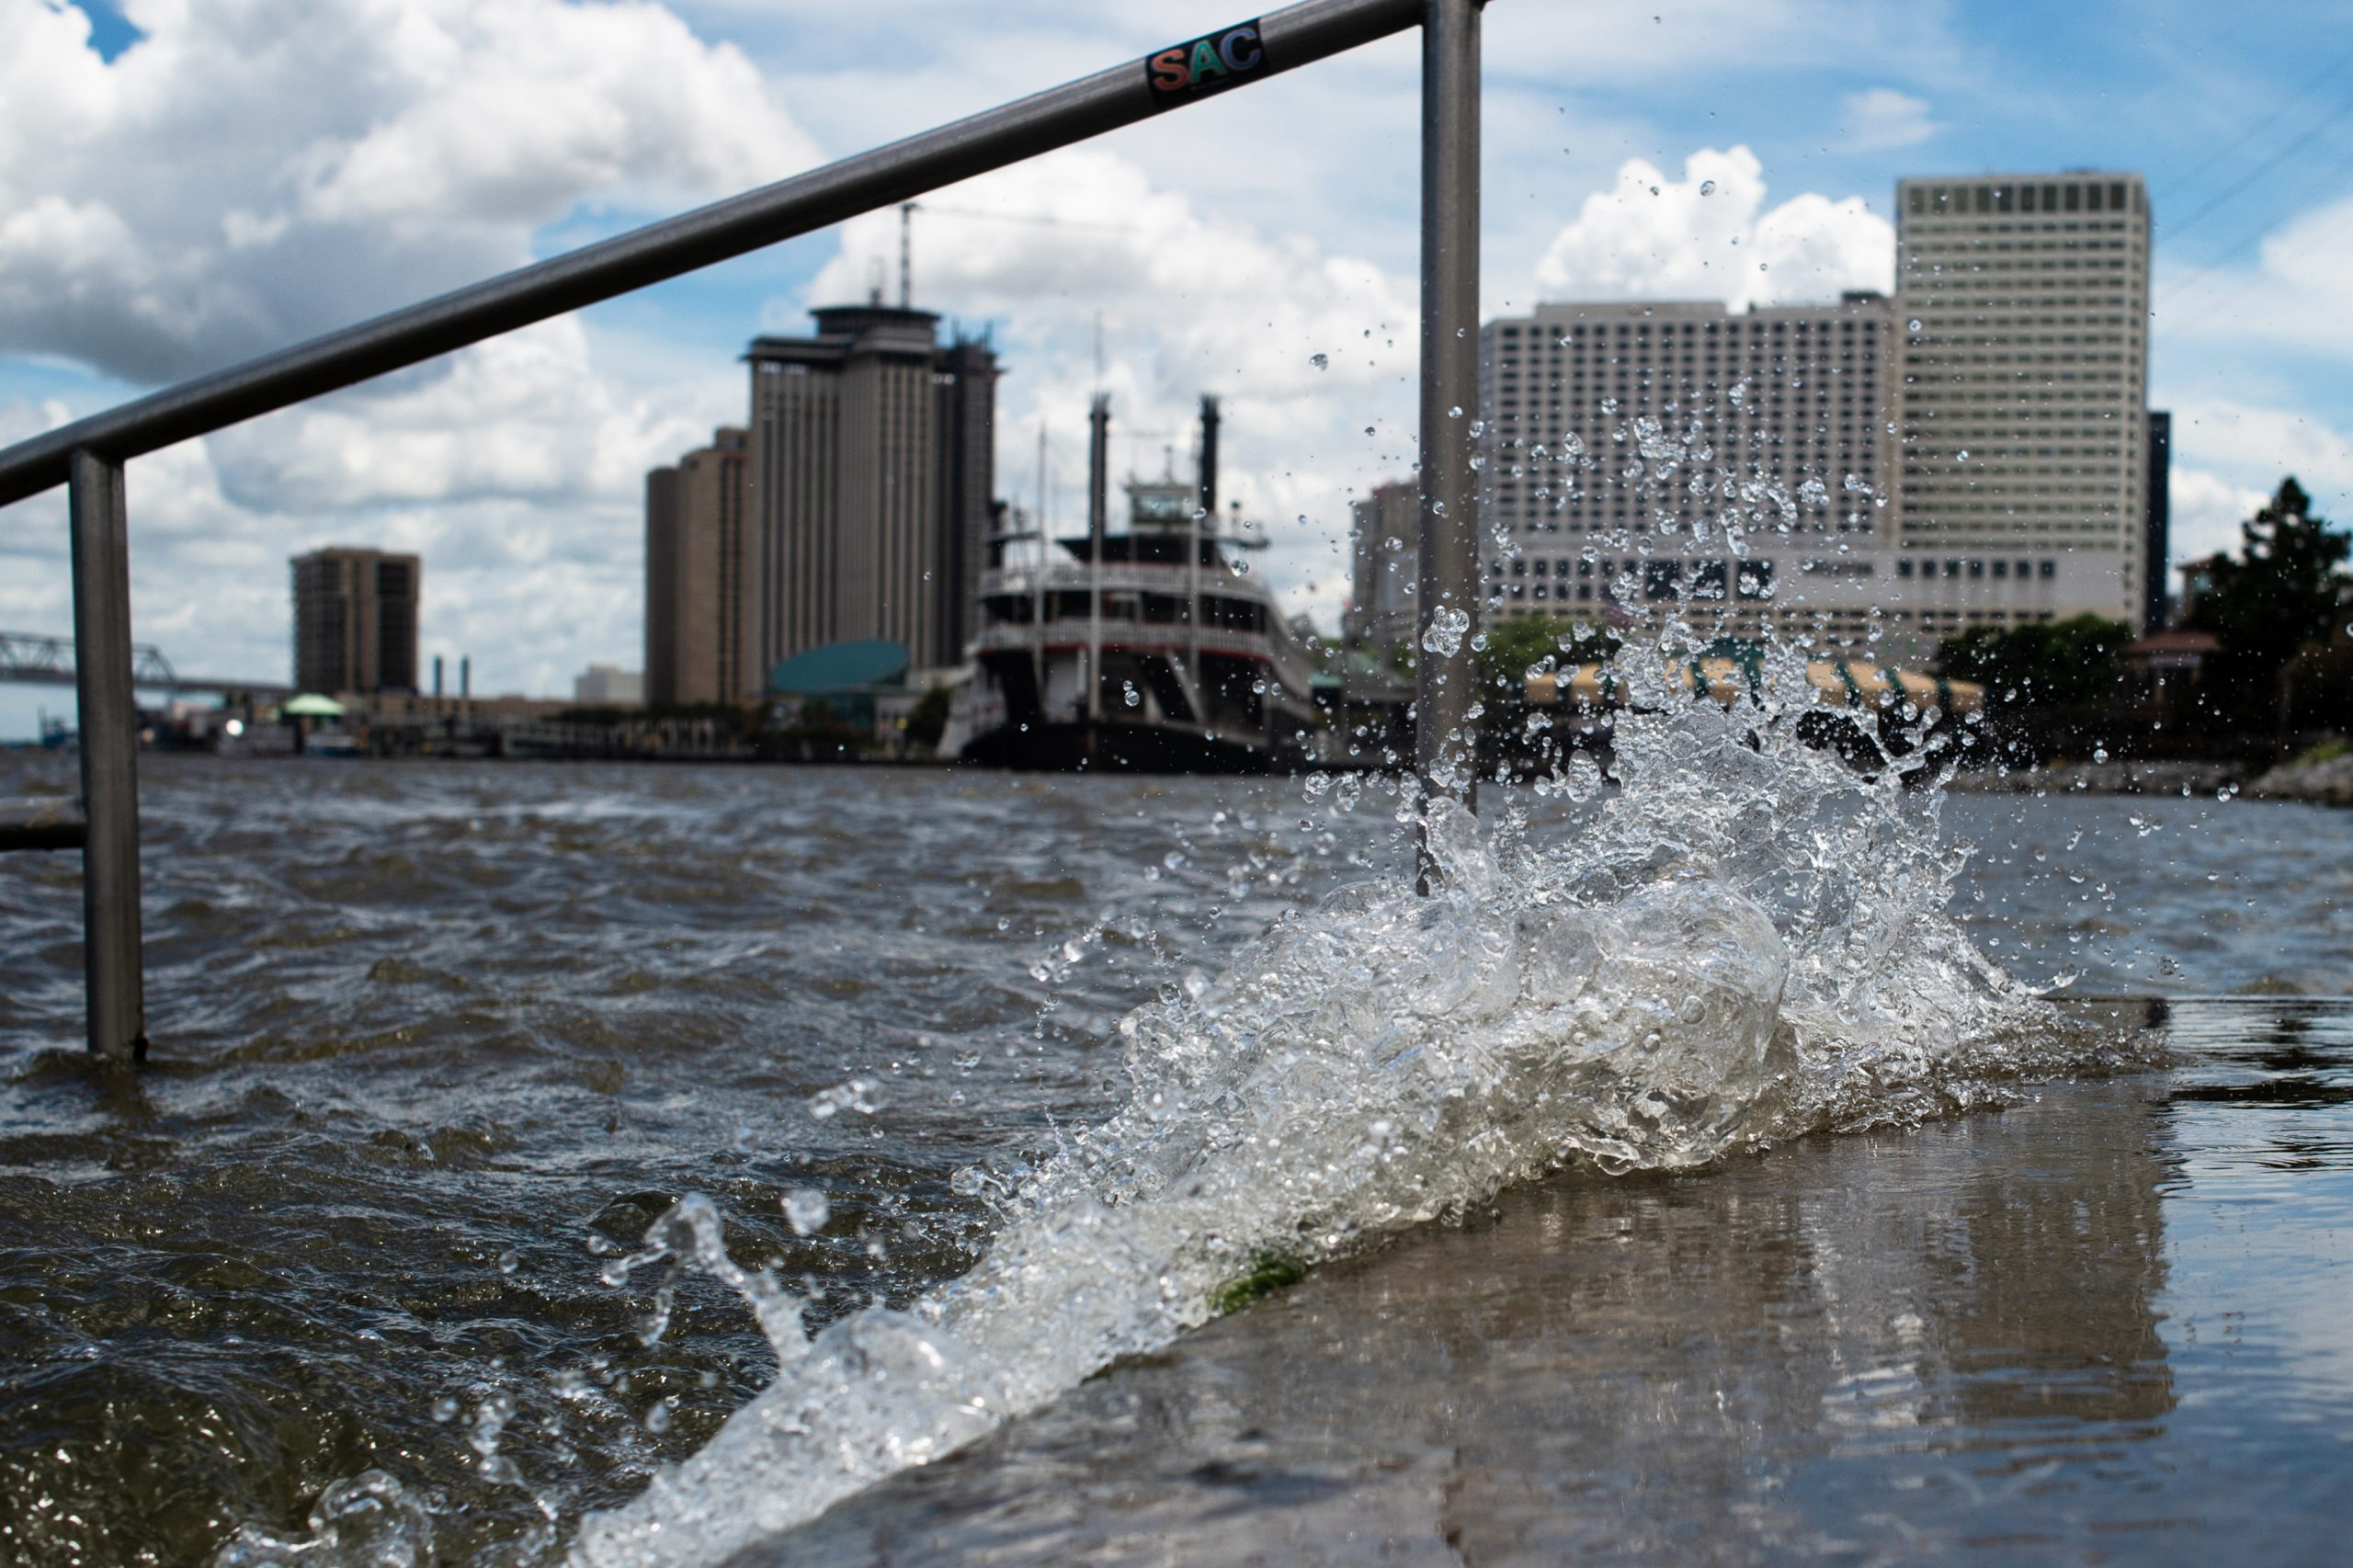 The rain-swollen Mississippi River was already flooding walkways and steps near a New Orleans levee when Barry became the second named storm of the 2019 hurricane season on July 11. Credit: Matthew Hatcher/SOPA Images/LightRocket via Getty Images